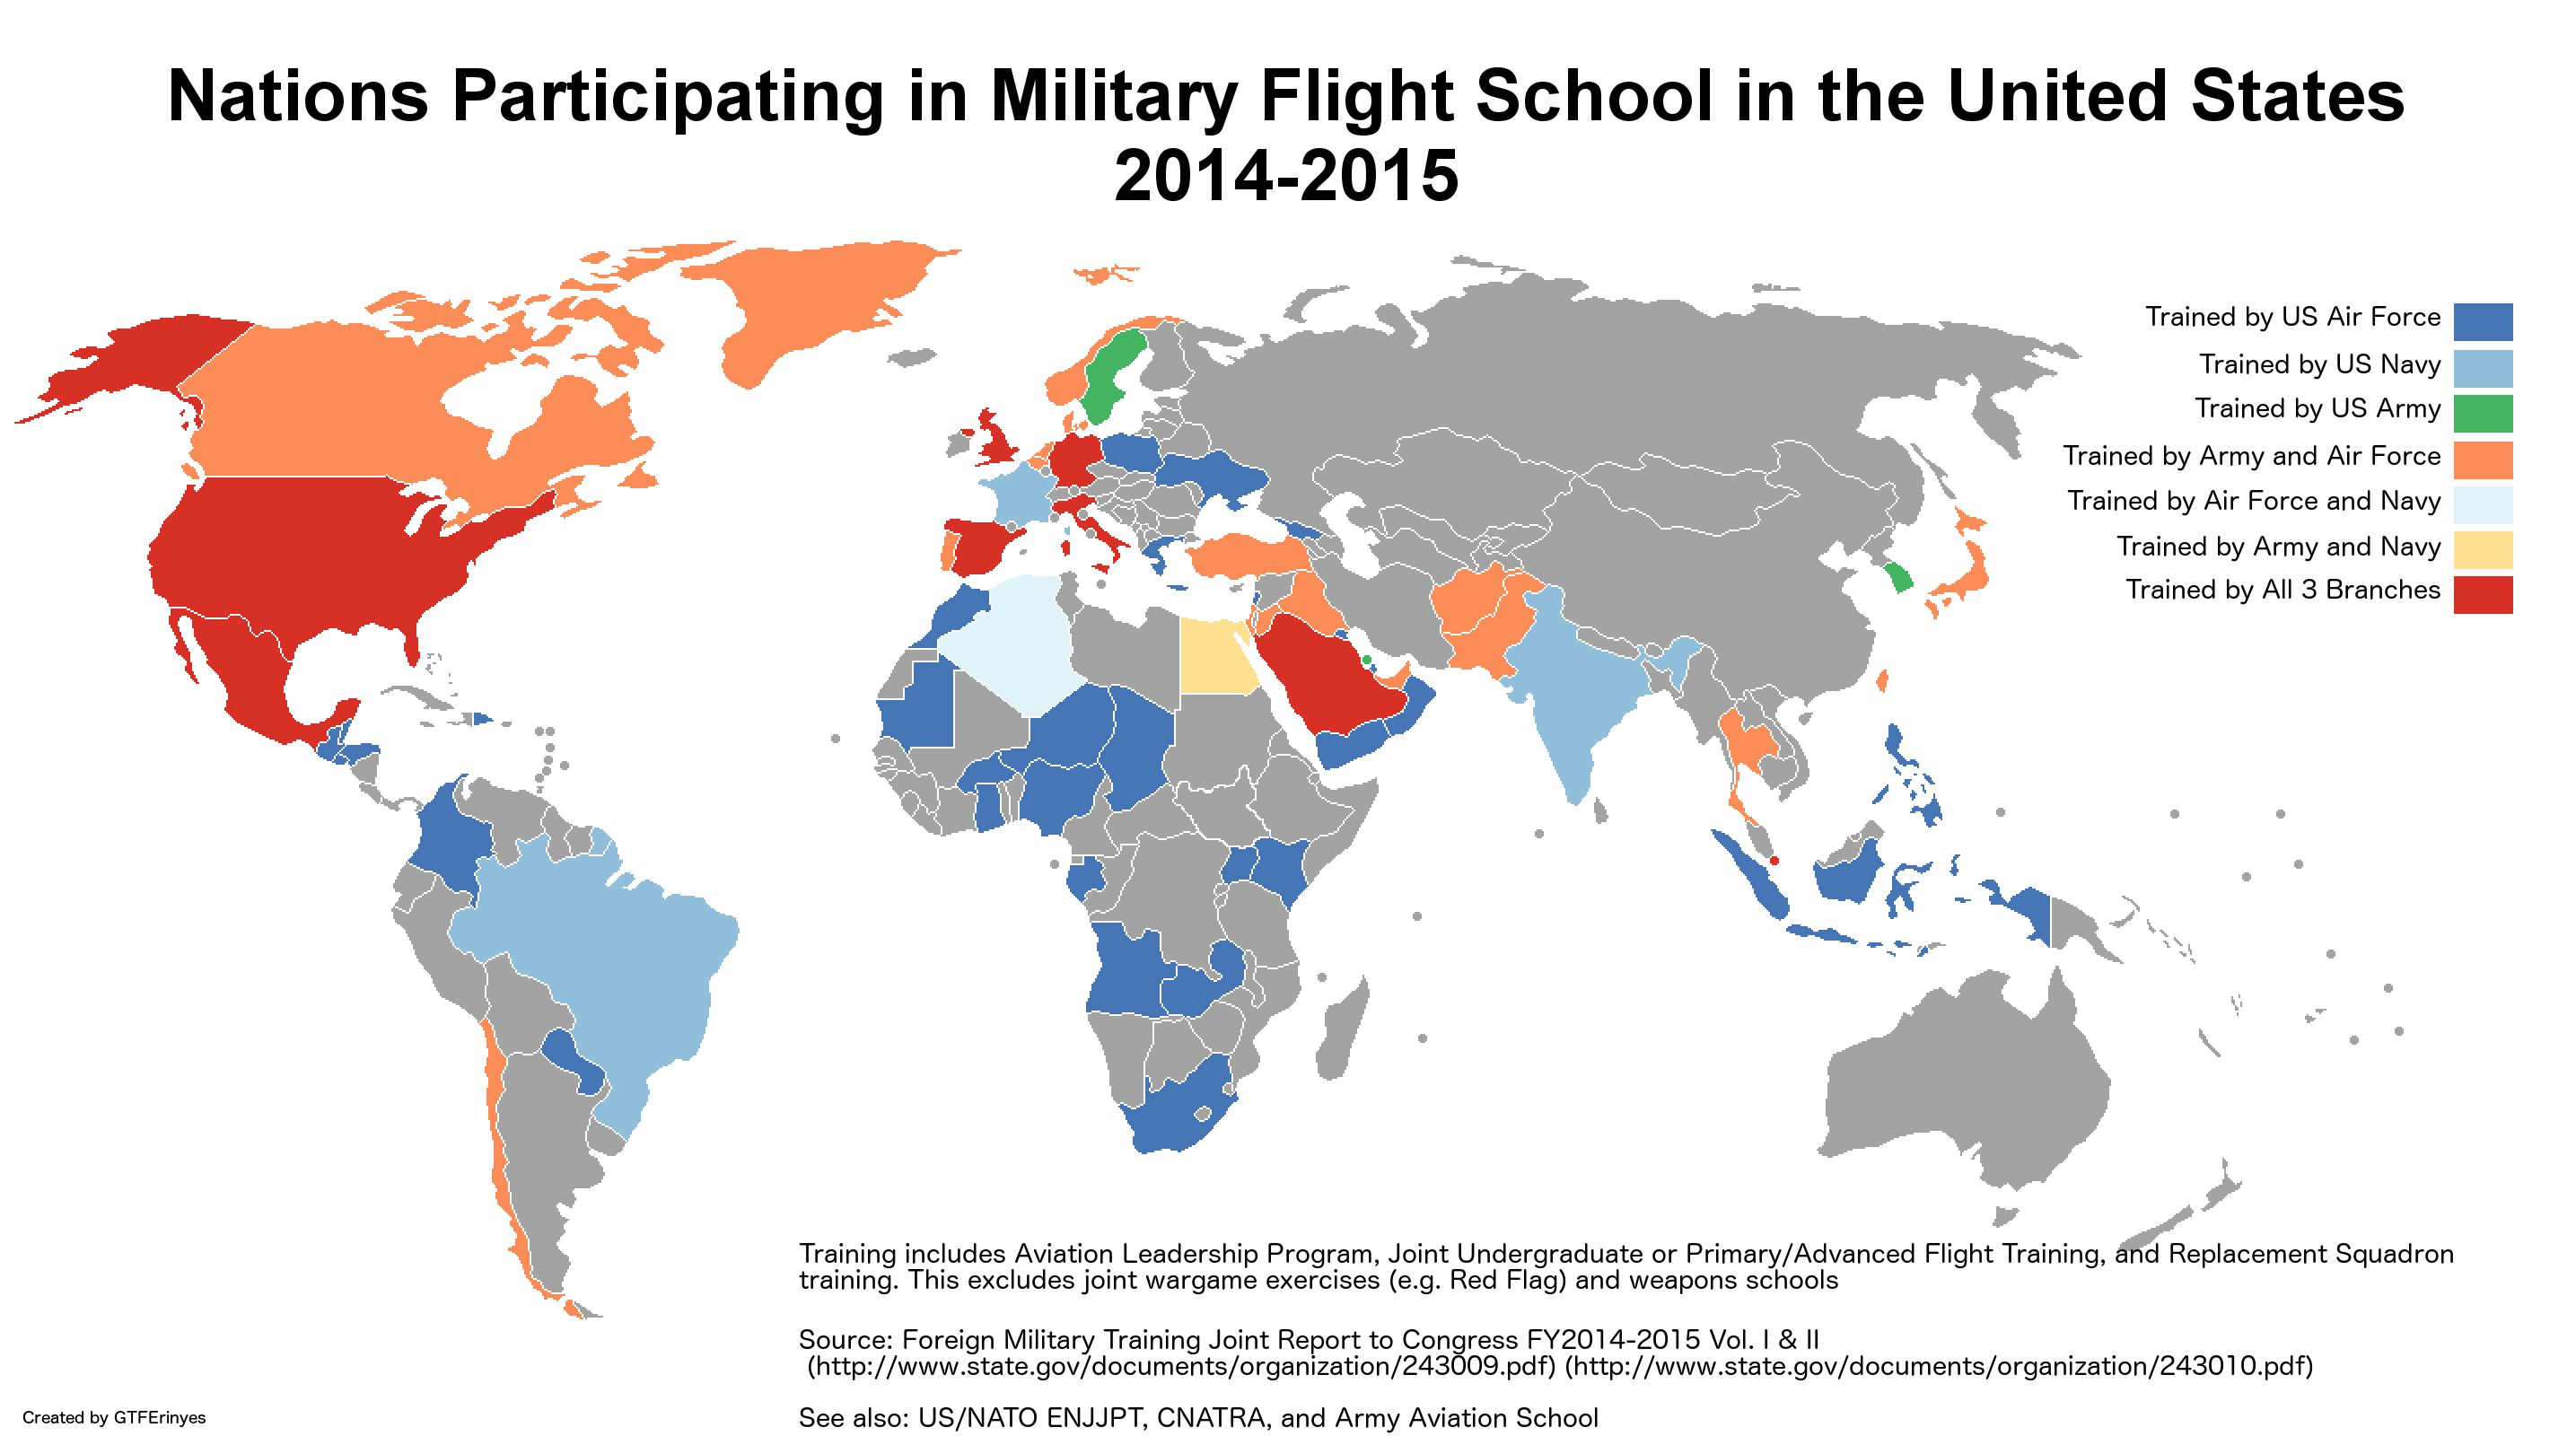 Nations participating in us military flight school and the branches game name the language by map sporcle games trivia gumiabroncs Choice Image